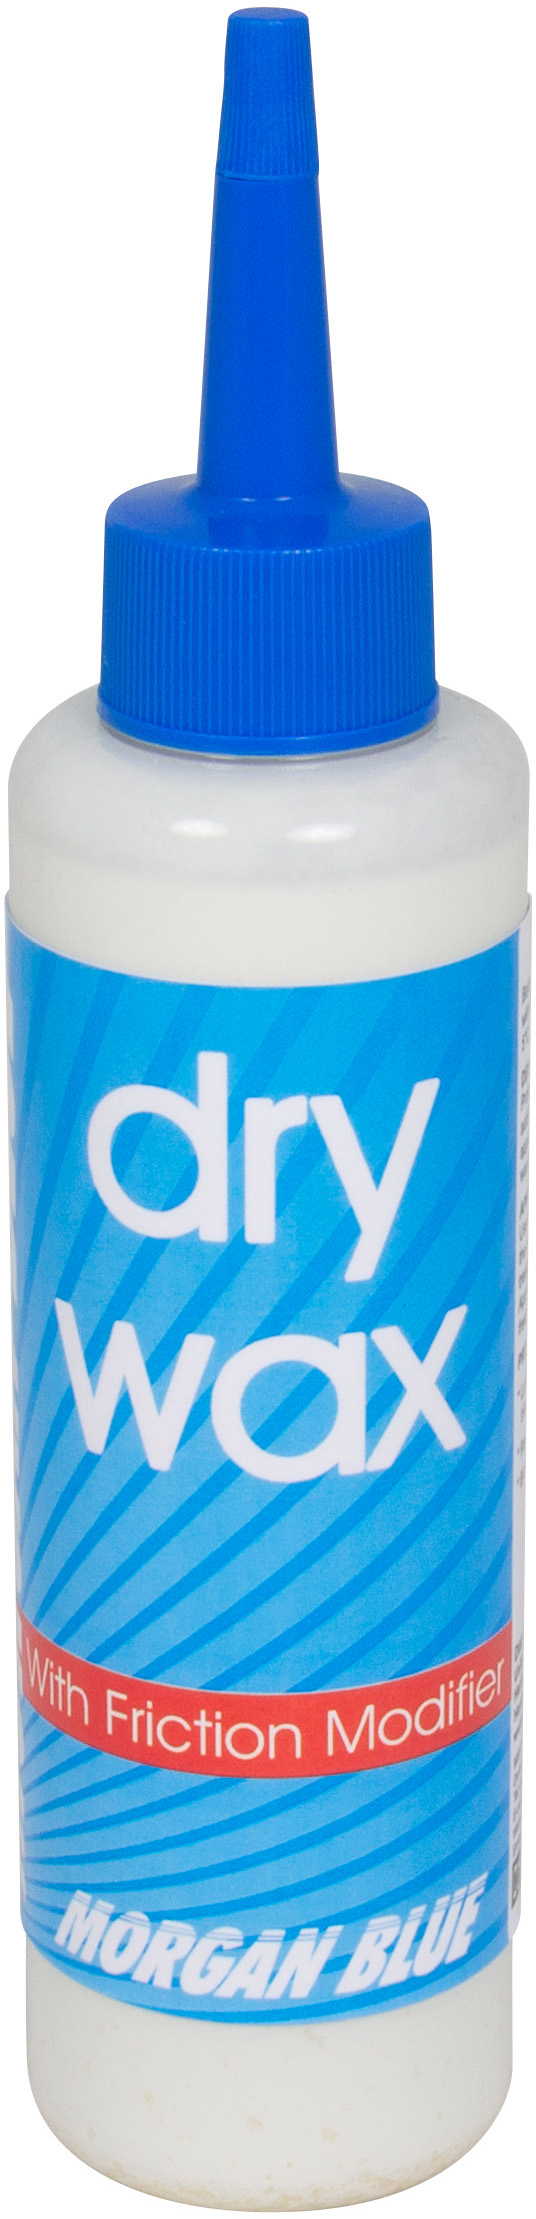 Morgan Blue Dry Wax Chain Lube 125mm | polish_and_lubricant_component